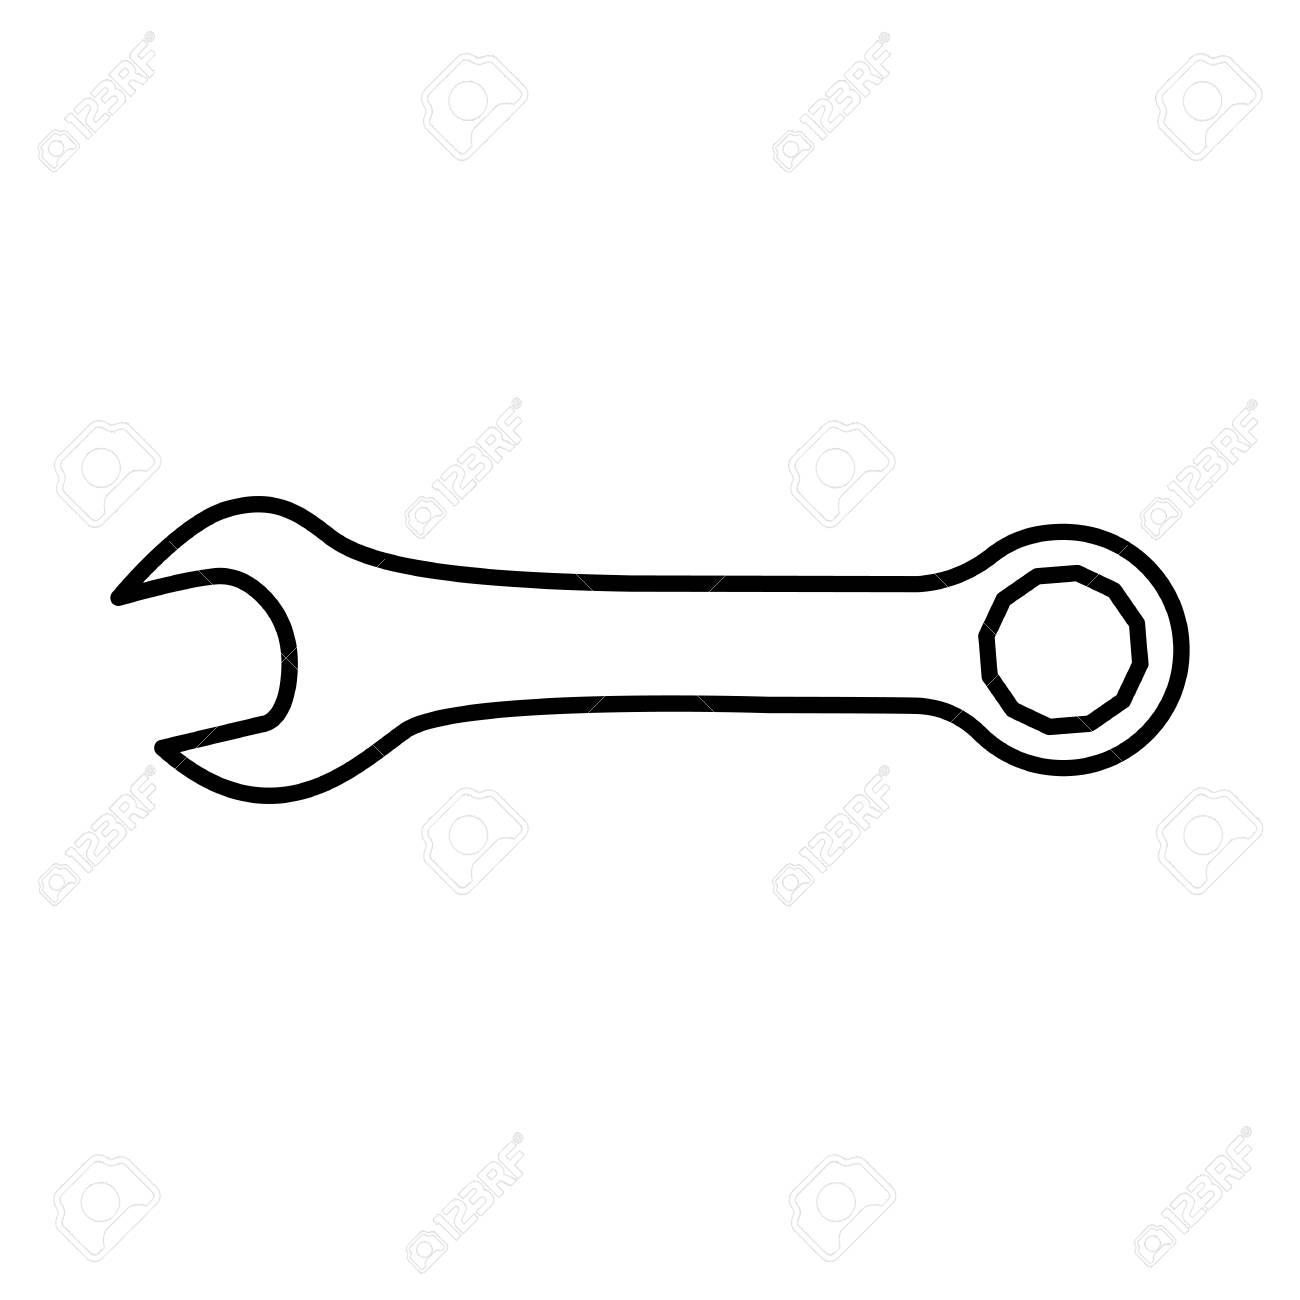 Wrench or spanner icon. Combination wrench with open and ring...